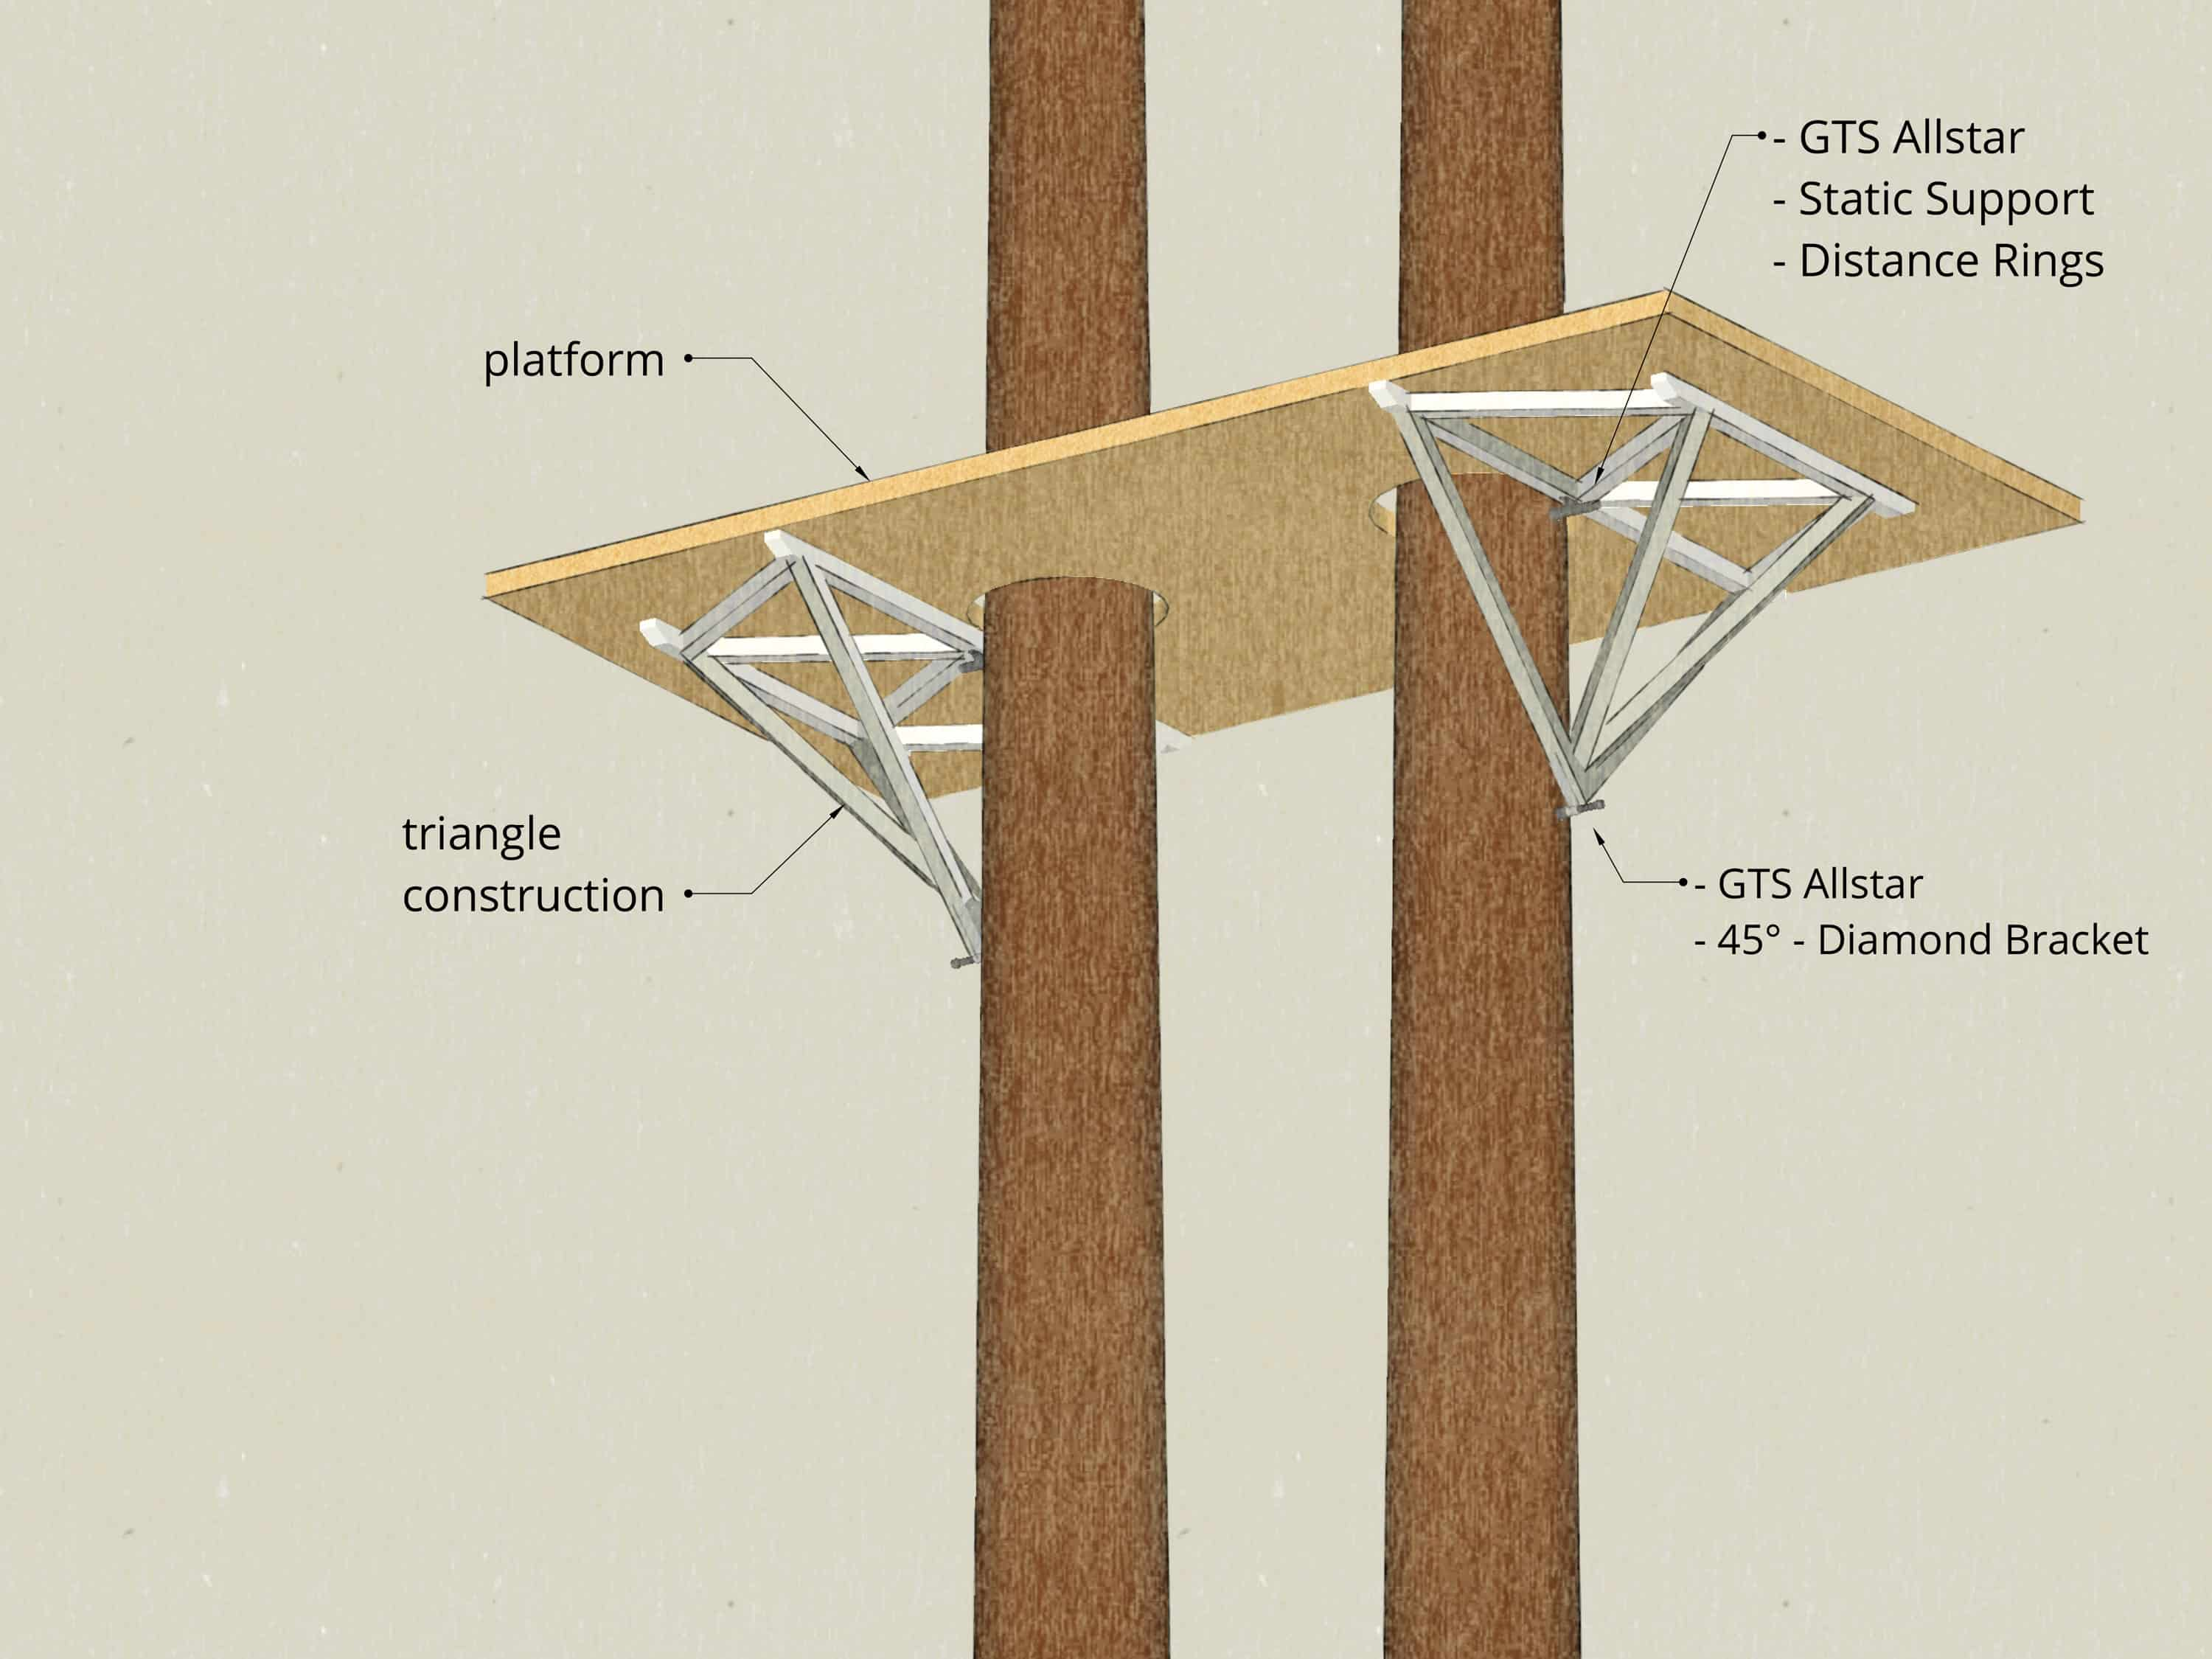 How to attach a heavy platform between two trees